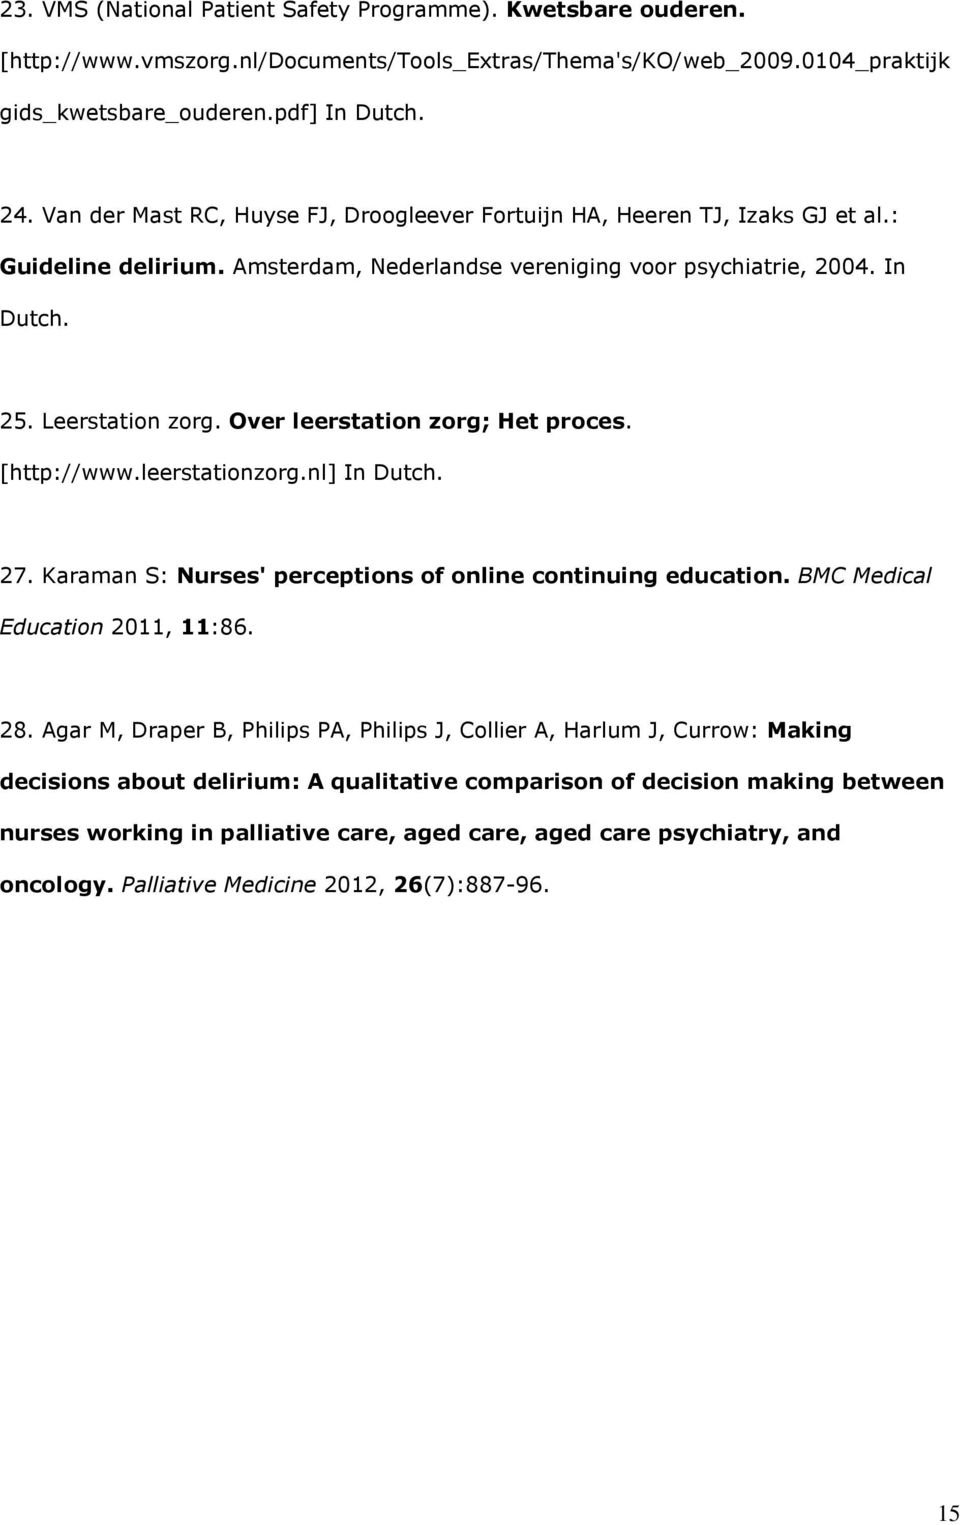 Over leerstation zorg; Het proces. [http://www.leerstationzorg.nl] In Dutch. 27. Karaman S: Nurses' perceptions of online continuing education. BMC Medical Education 2011, 11:86. 28.